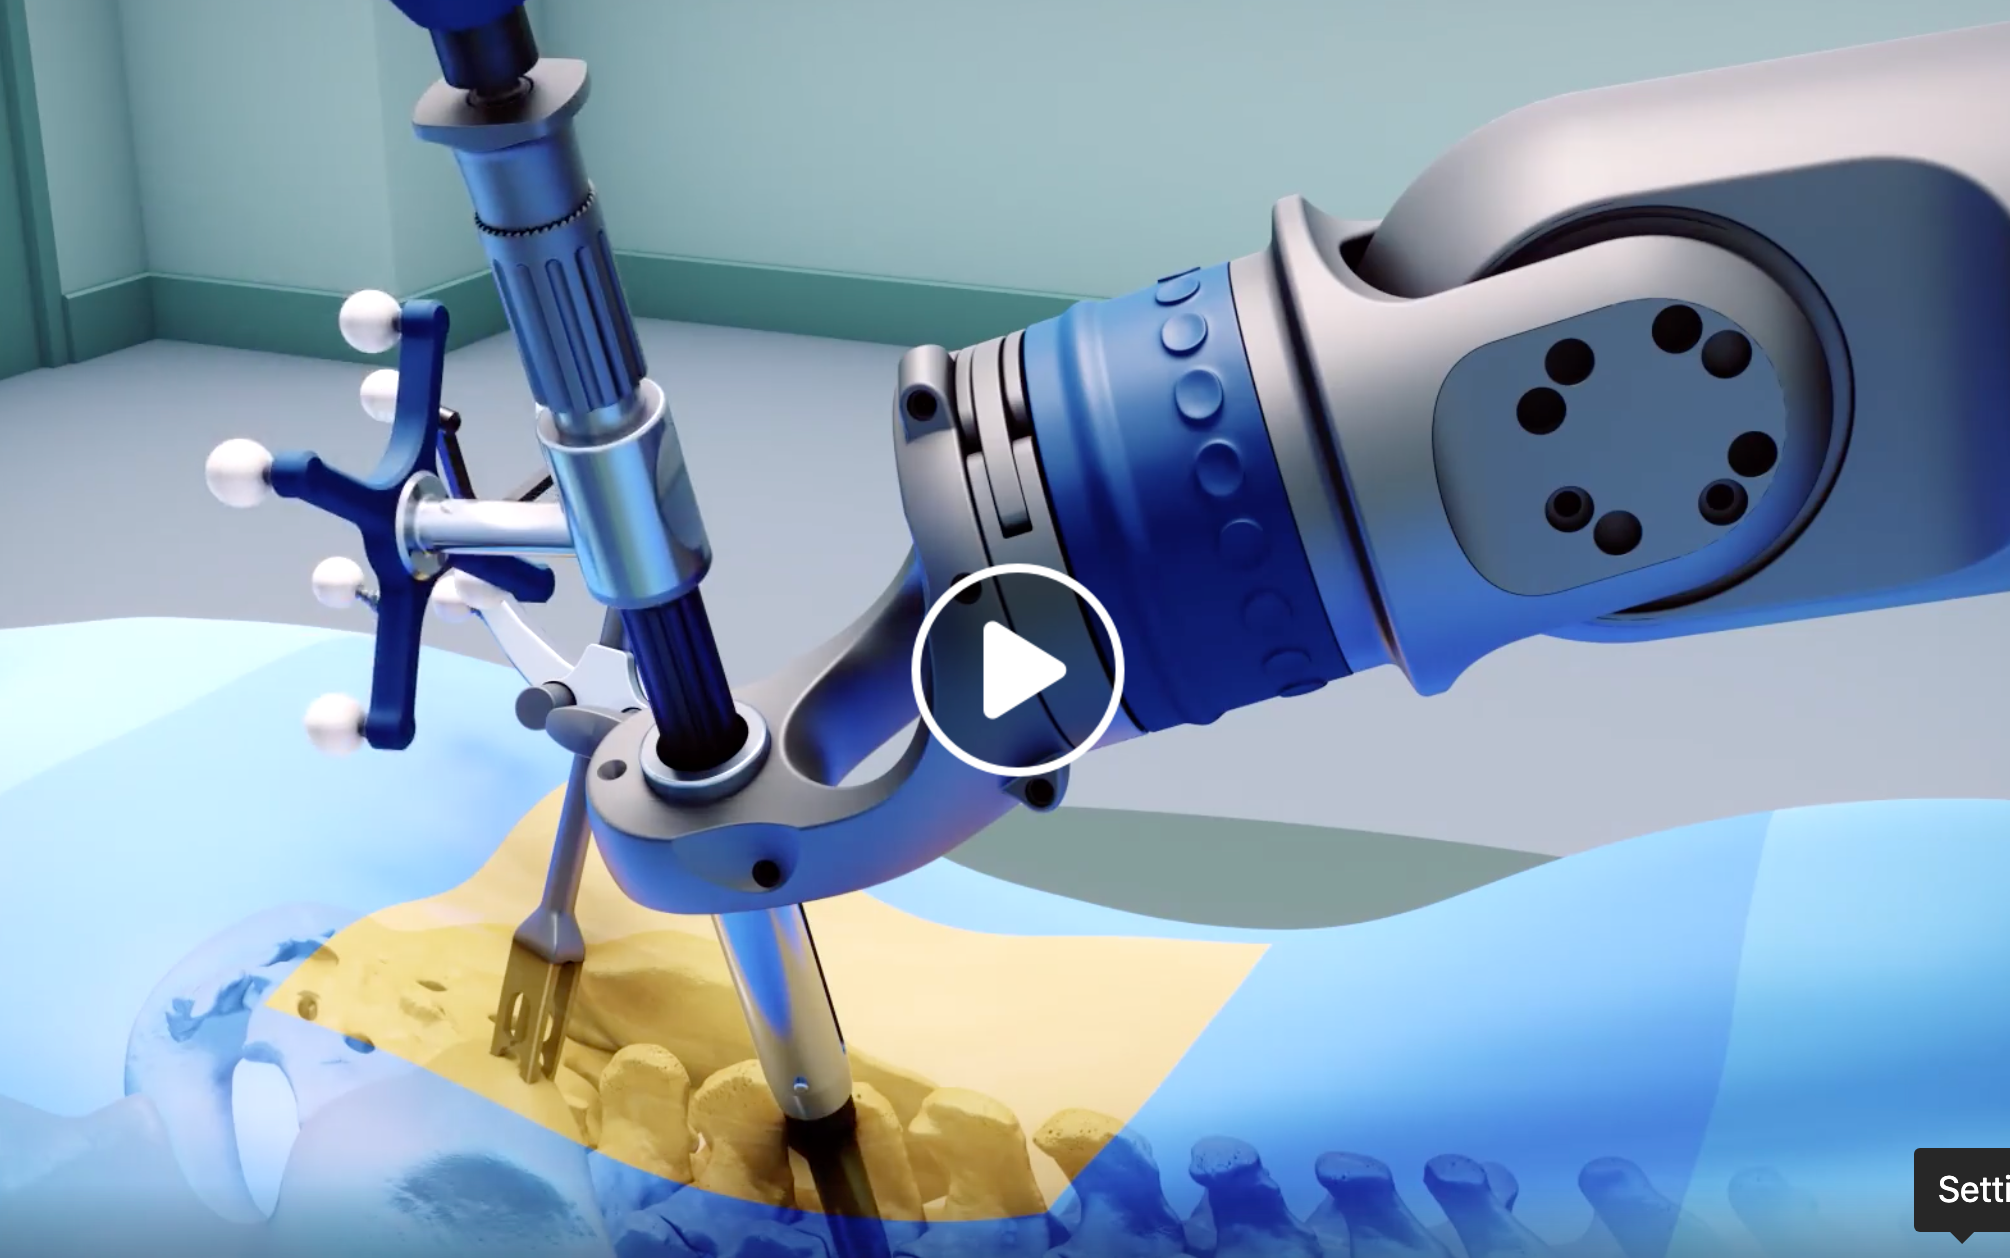 3 spine surgeons share their early robotic surgery experiences